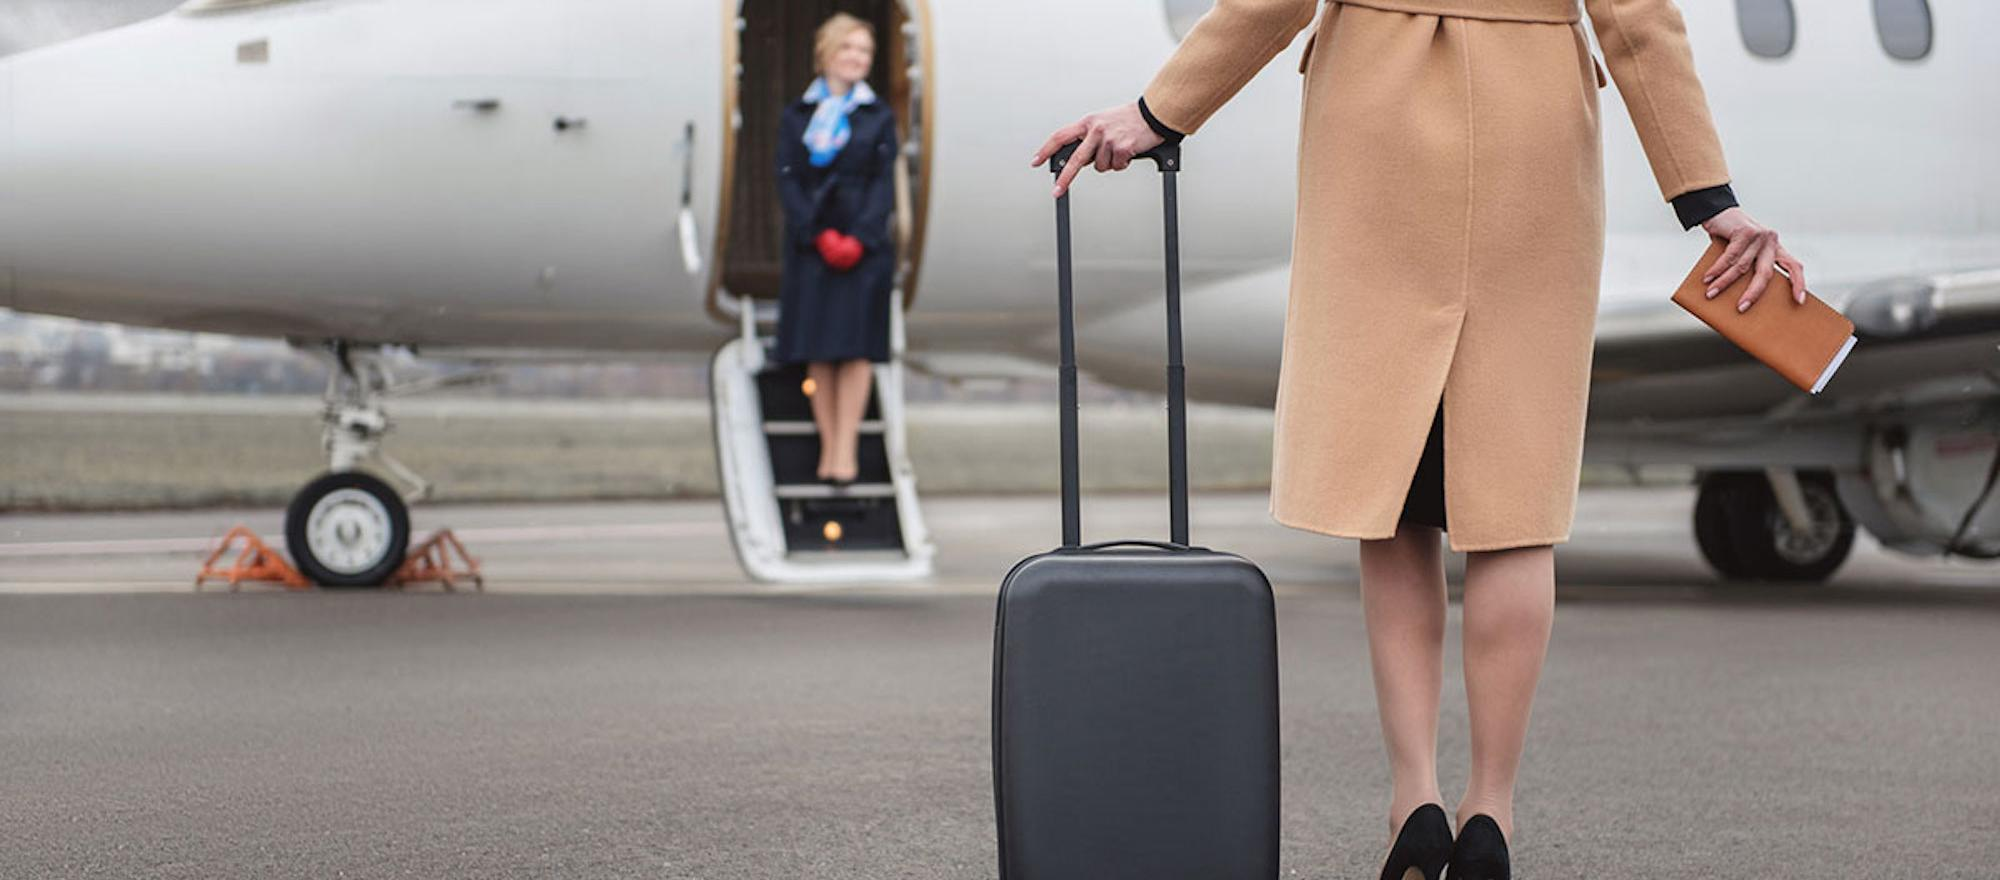 Boarding a business jet